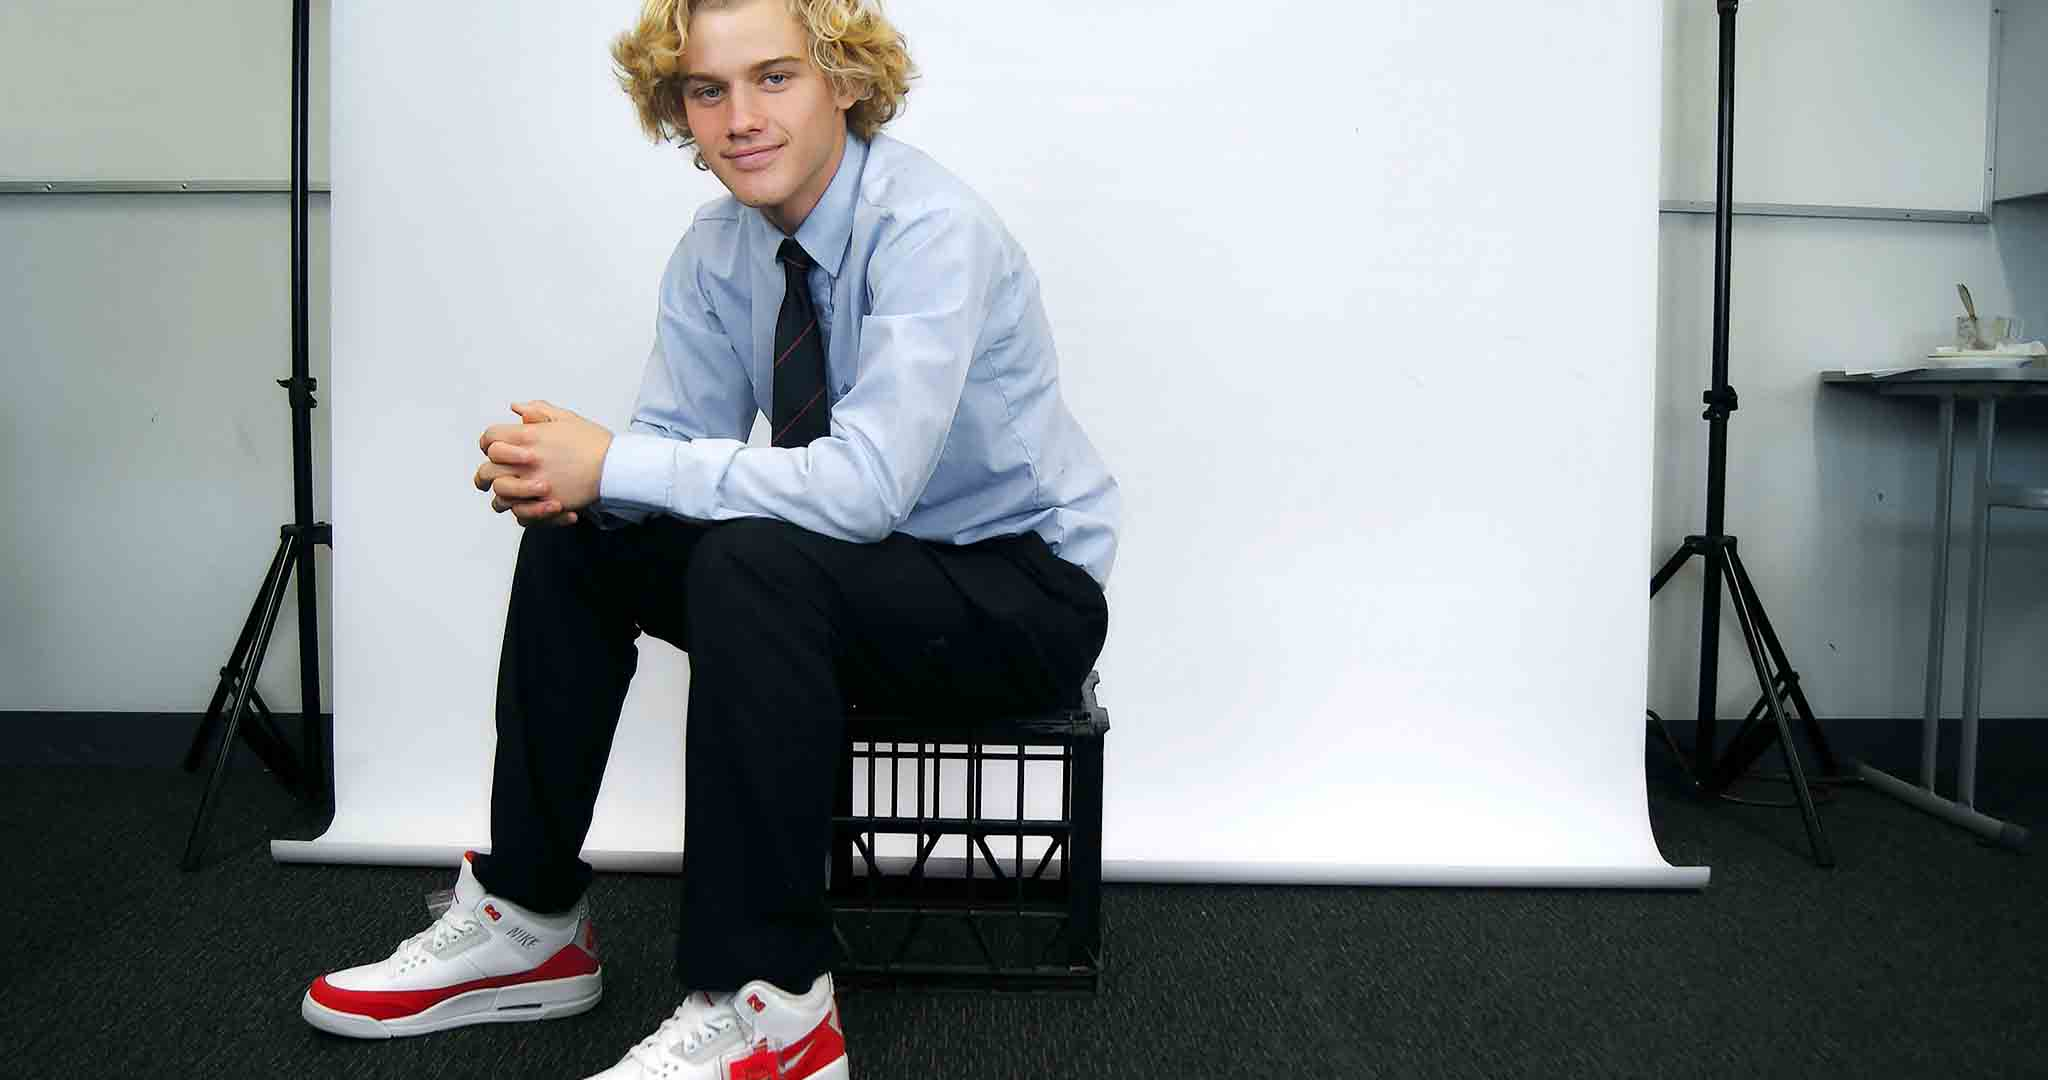 adolescent air jordan blonde business man stock photography